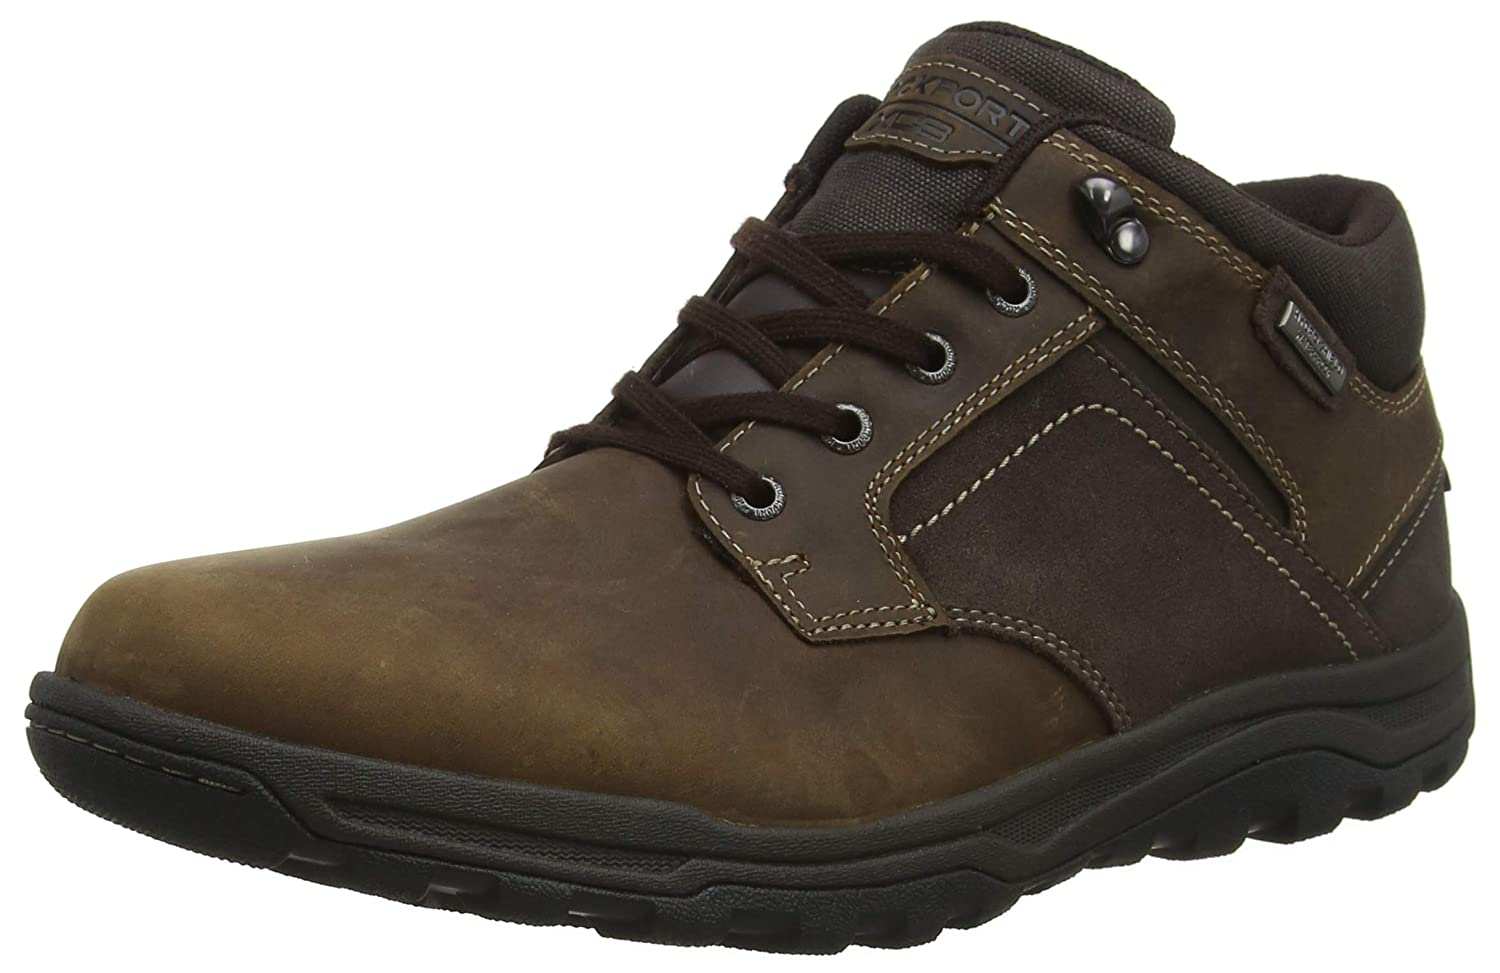 04ae3866738ff Rockport Men's Harlee Chukka Boots: Amazon.co.uk: Shoes & Bags